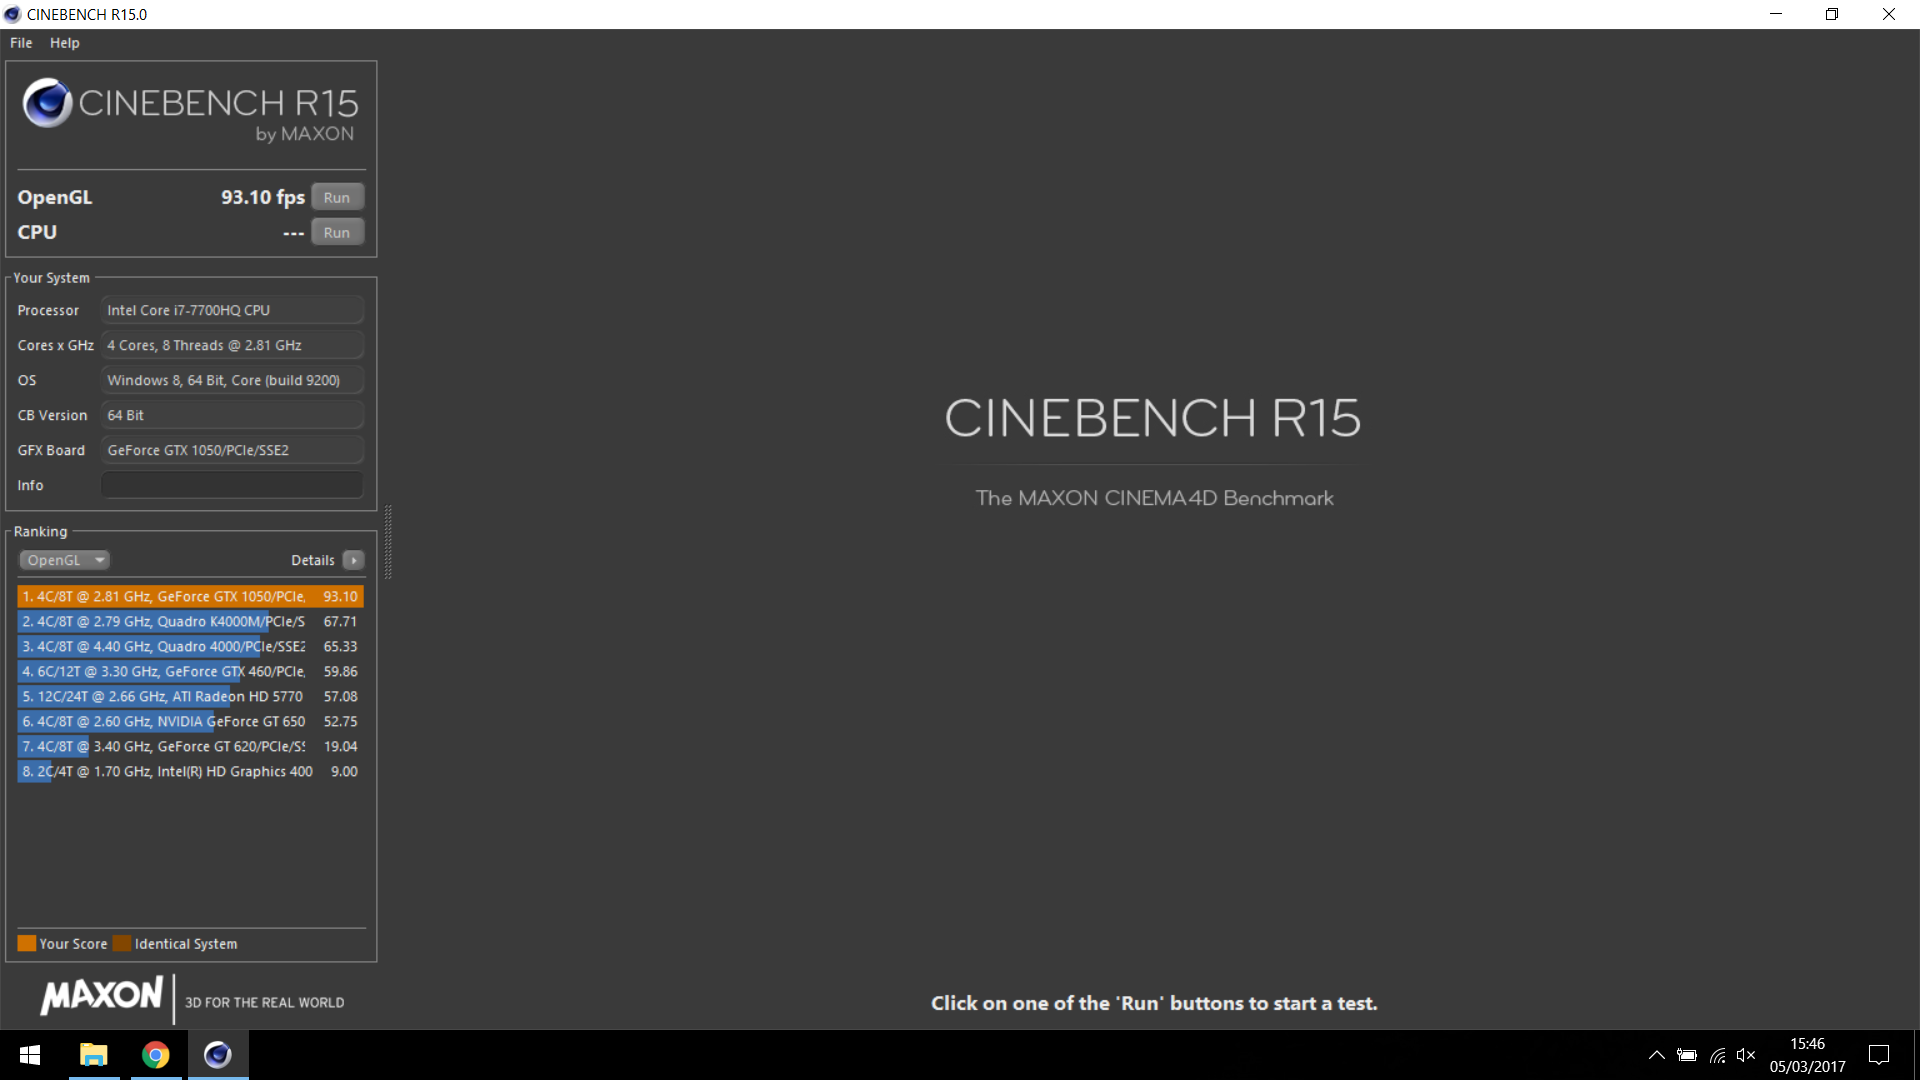 CINEBENCH R15 OpenGL - GPU Test benchmarks